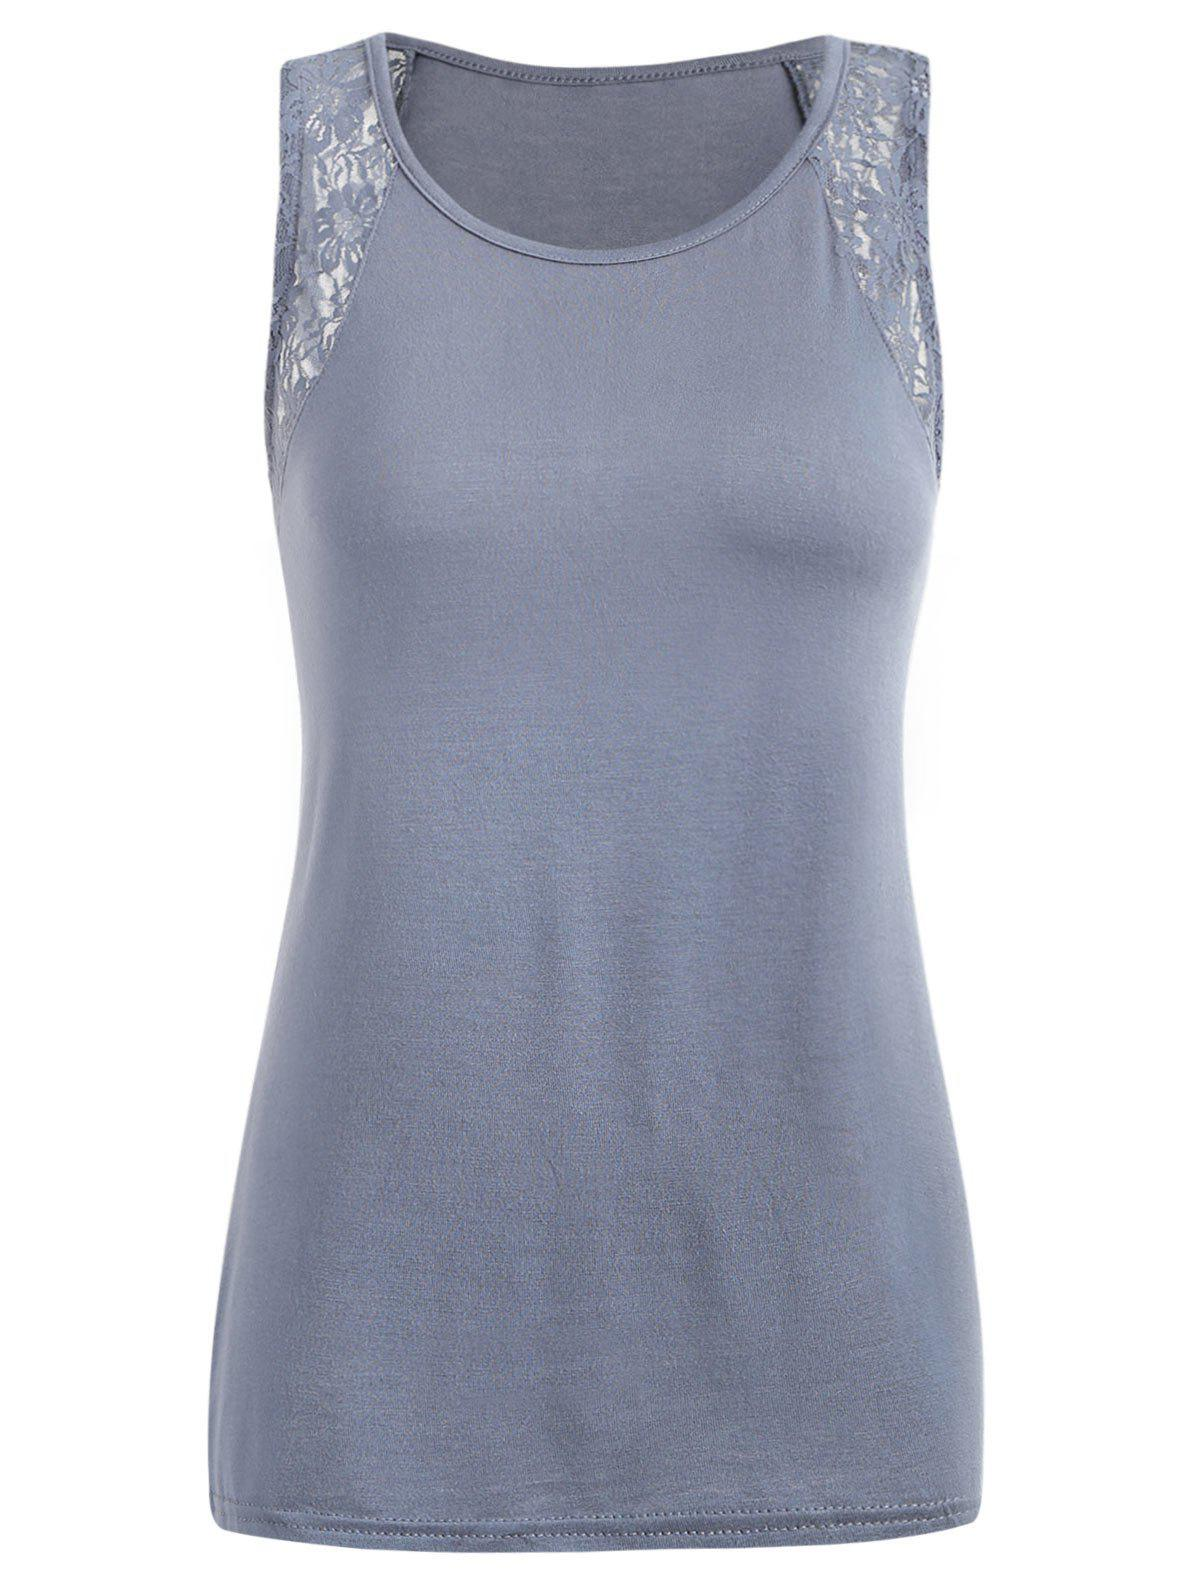 Affordable Lace Insert Round Neck Tank Top